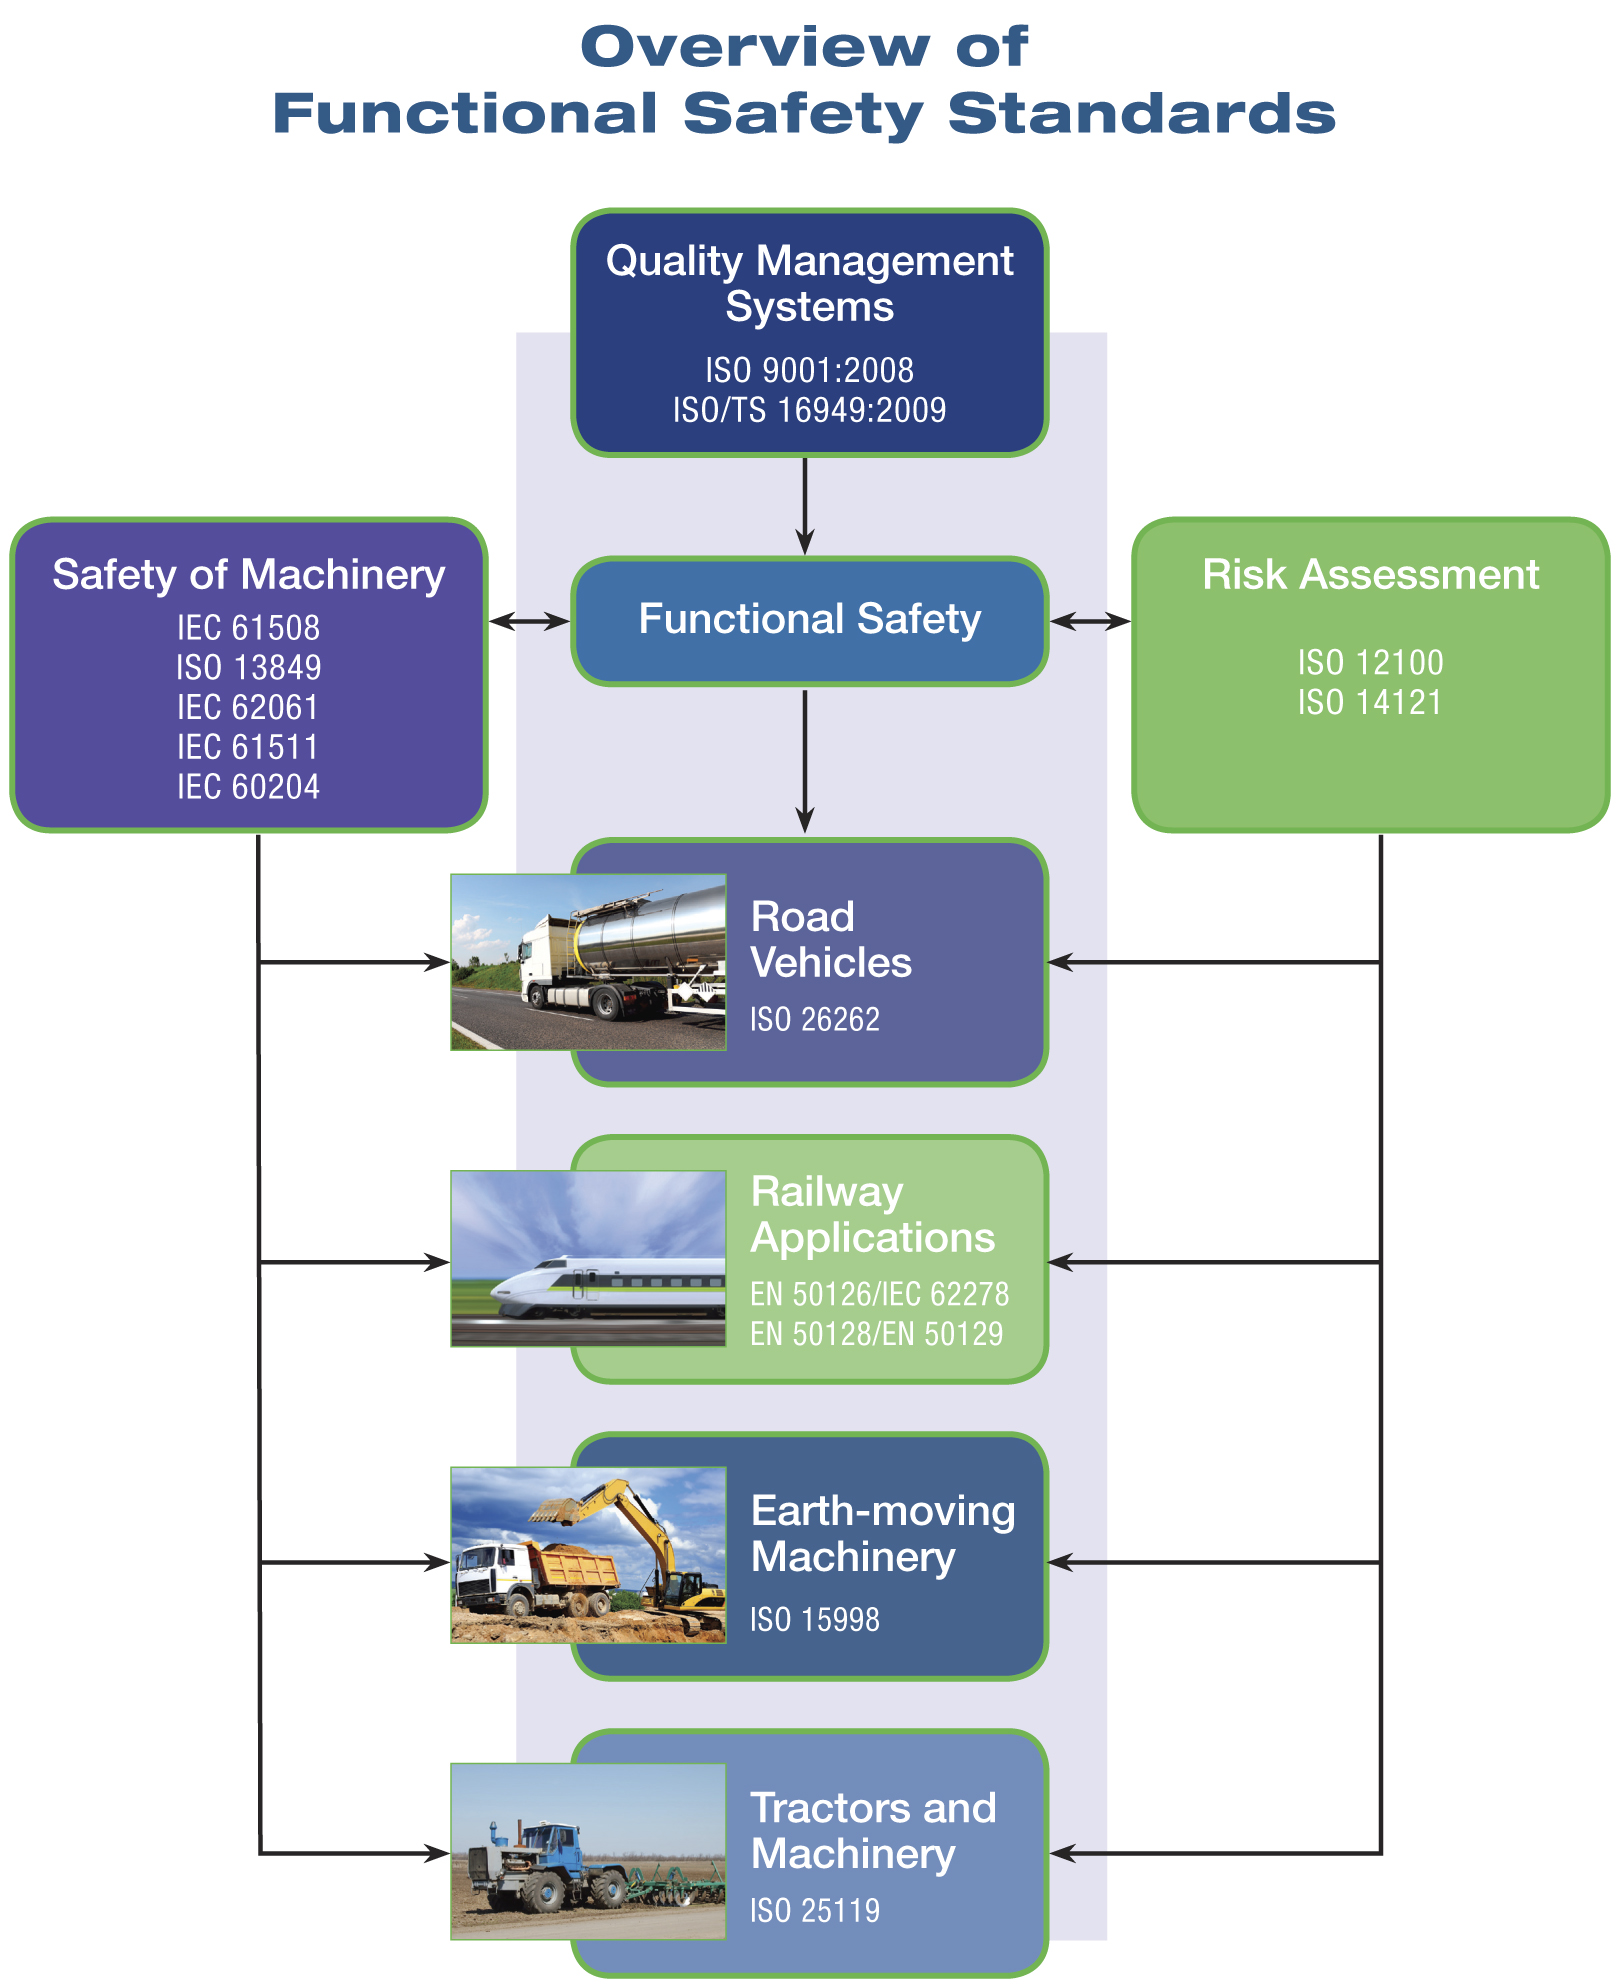 Industrial Hmi Panels Optimize Cleaning In Place Cip Ais Process Flow Diagram Ts 16949 Functional Safety Standards For Road Vehicle Railway Applications Tractors And Machinery Earth